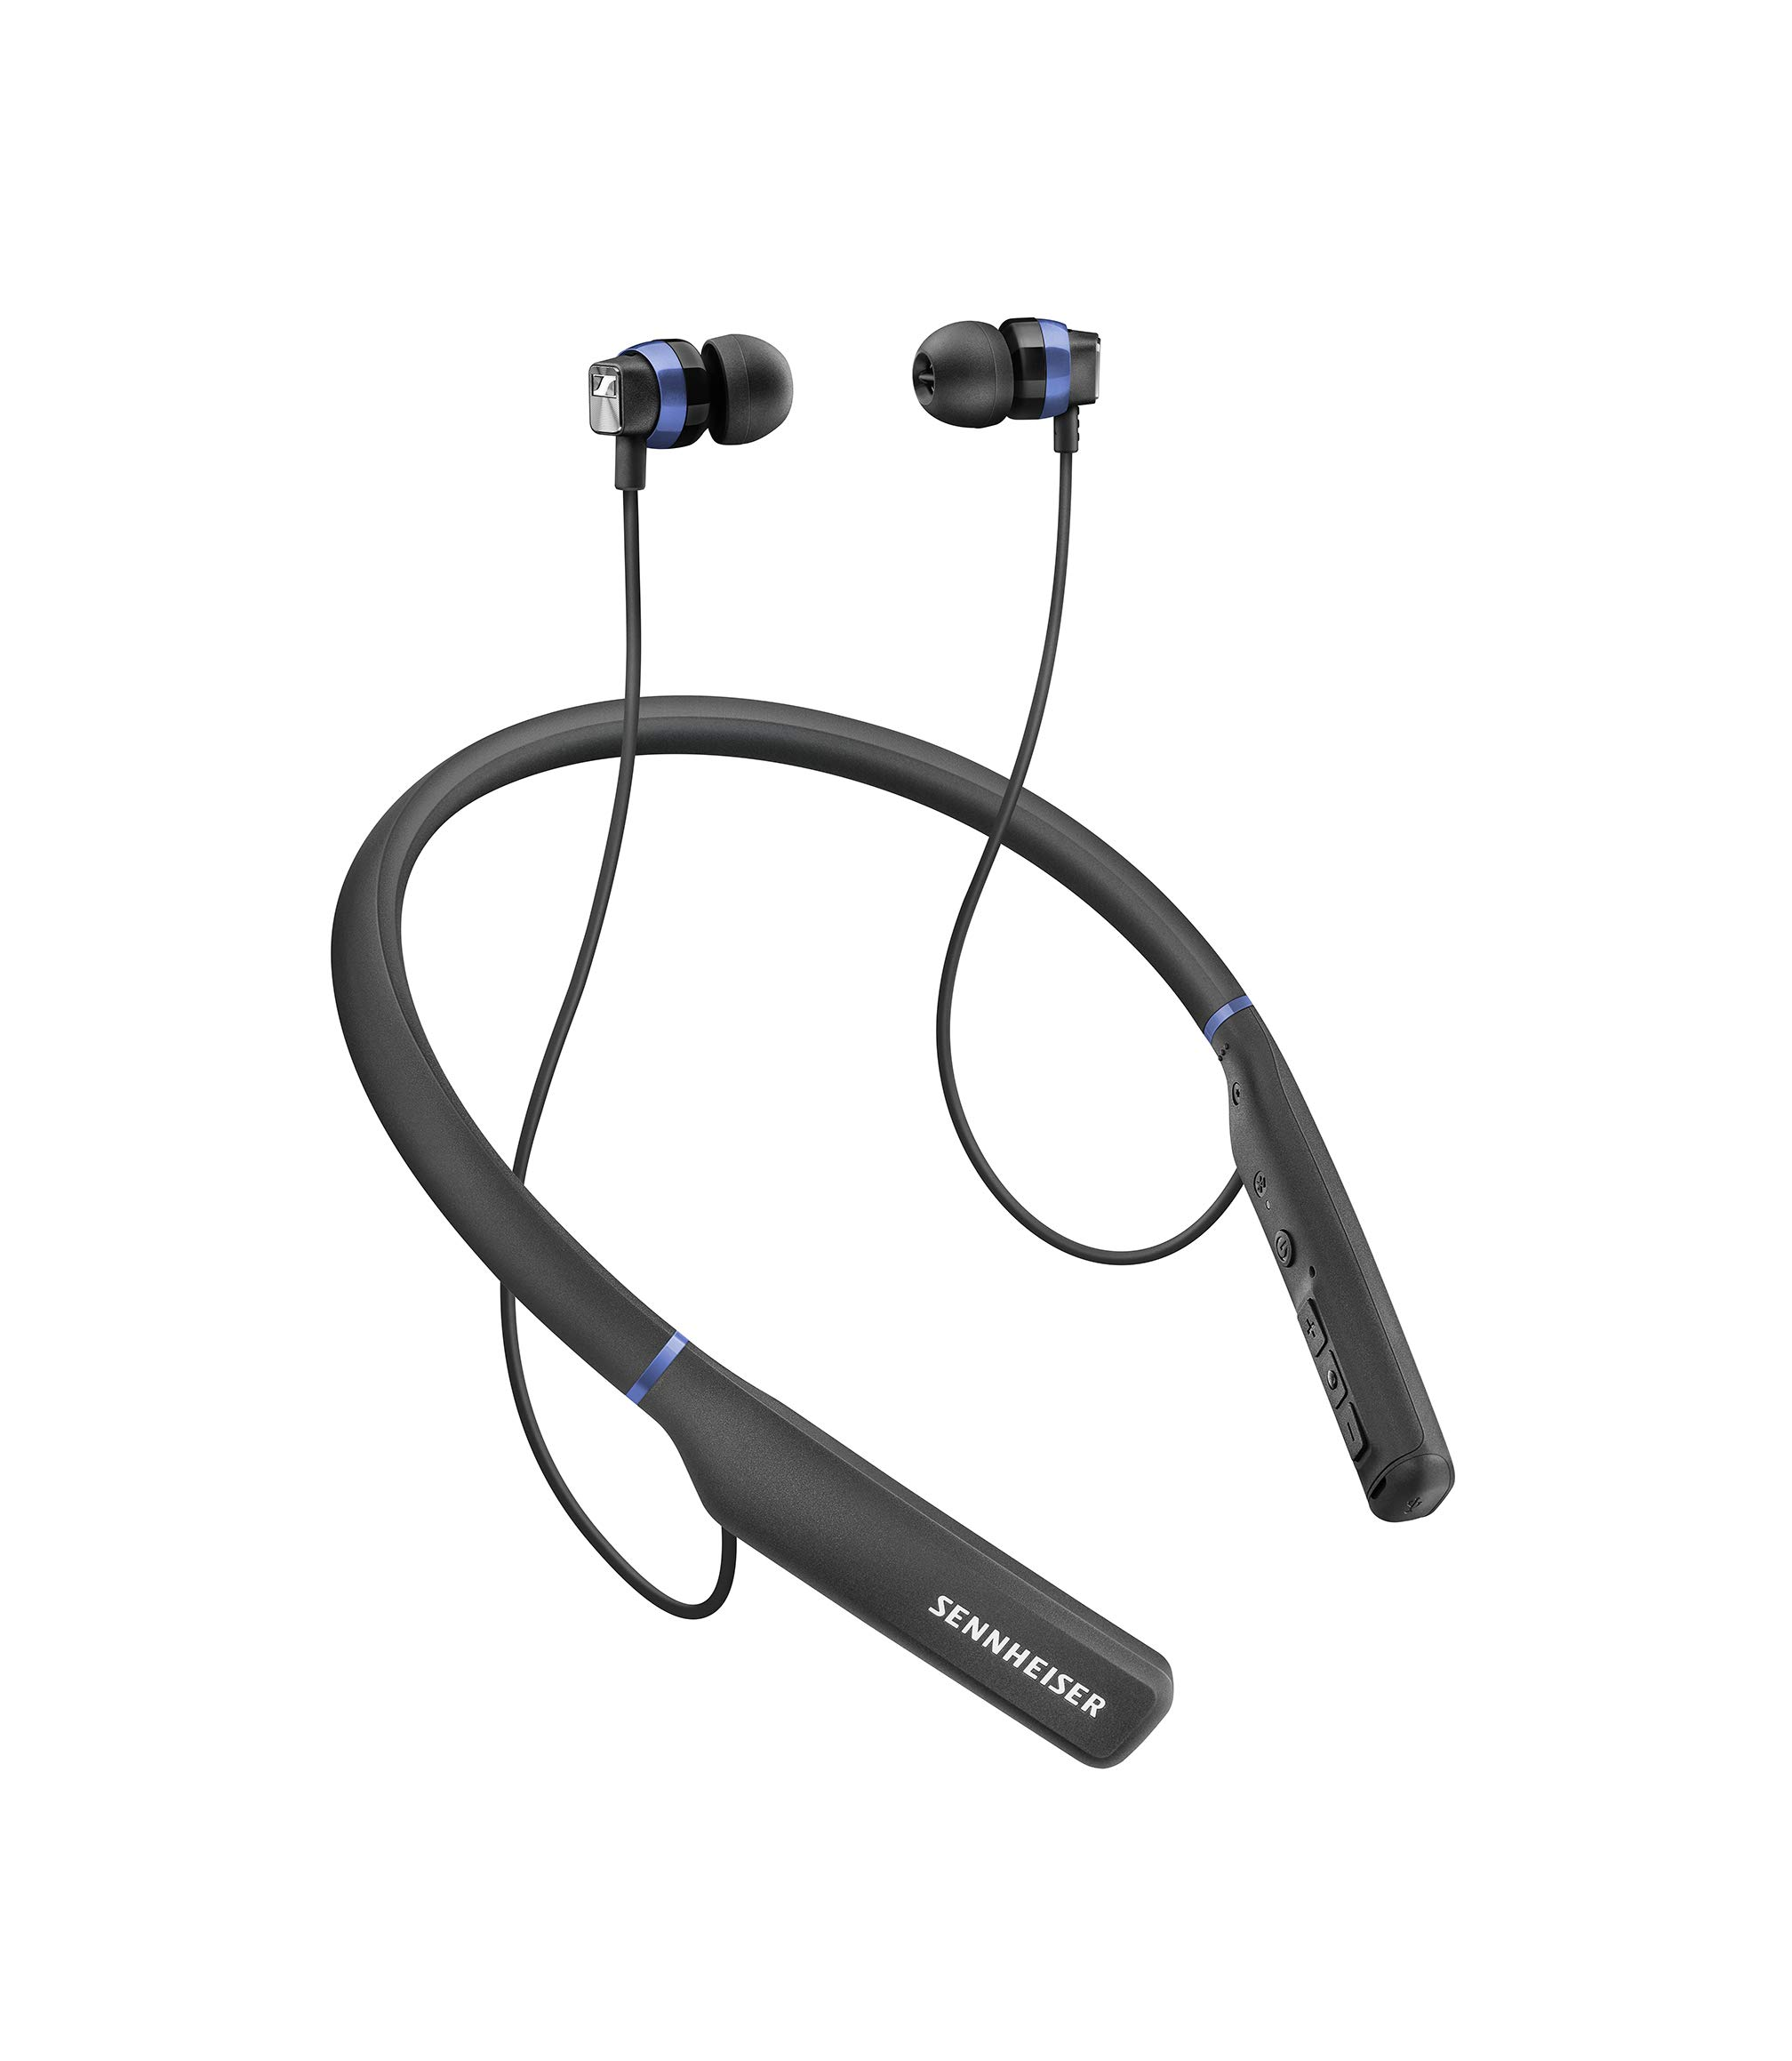 Amazon Com Sennheiser Cx 7 00bt Wireless In Ear Headphone Bluetooth 4 1 With Qualcomm Apt X Nfc One Touch Pairing 10 Hour Battery Life 1 5 Hour Fast Usb Charging Multi Connection To 2 Devices Electronics